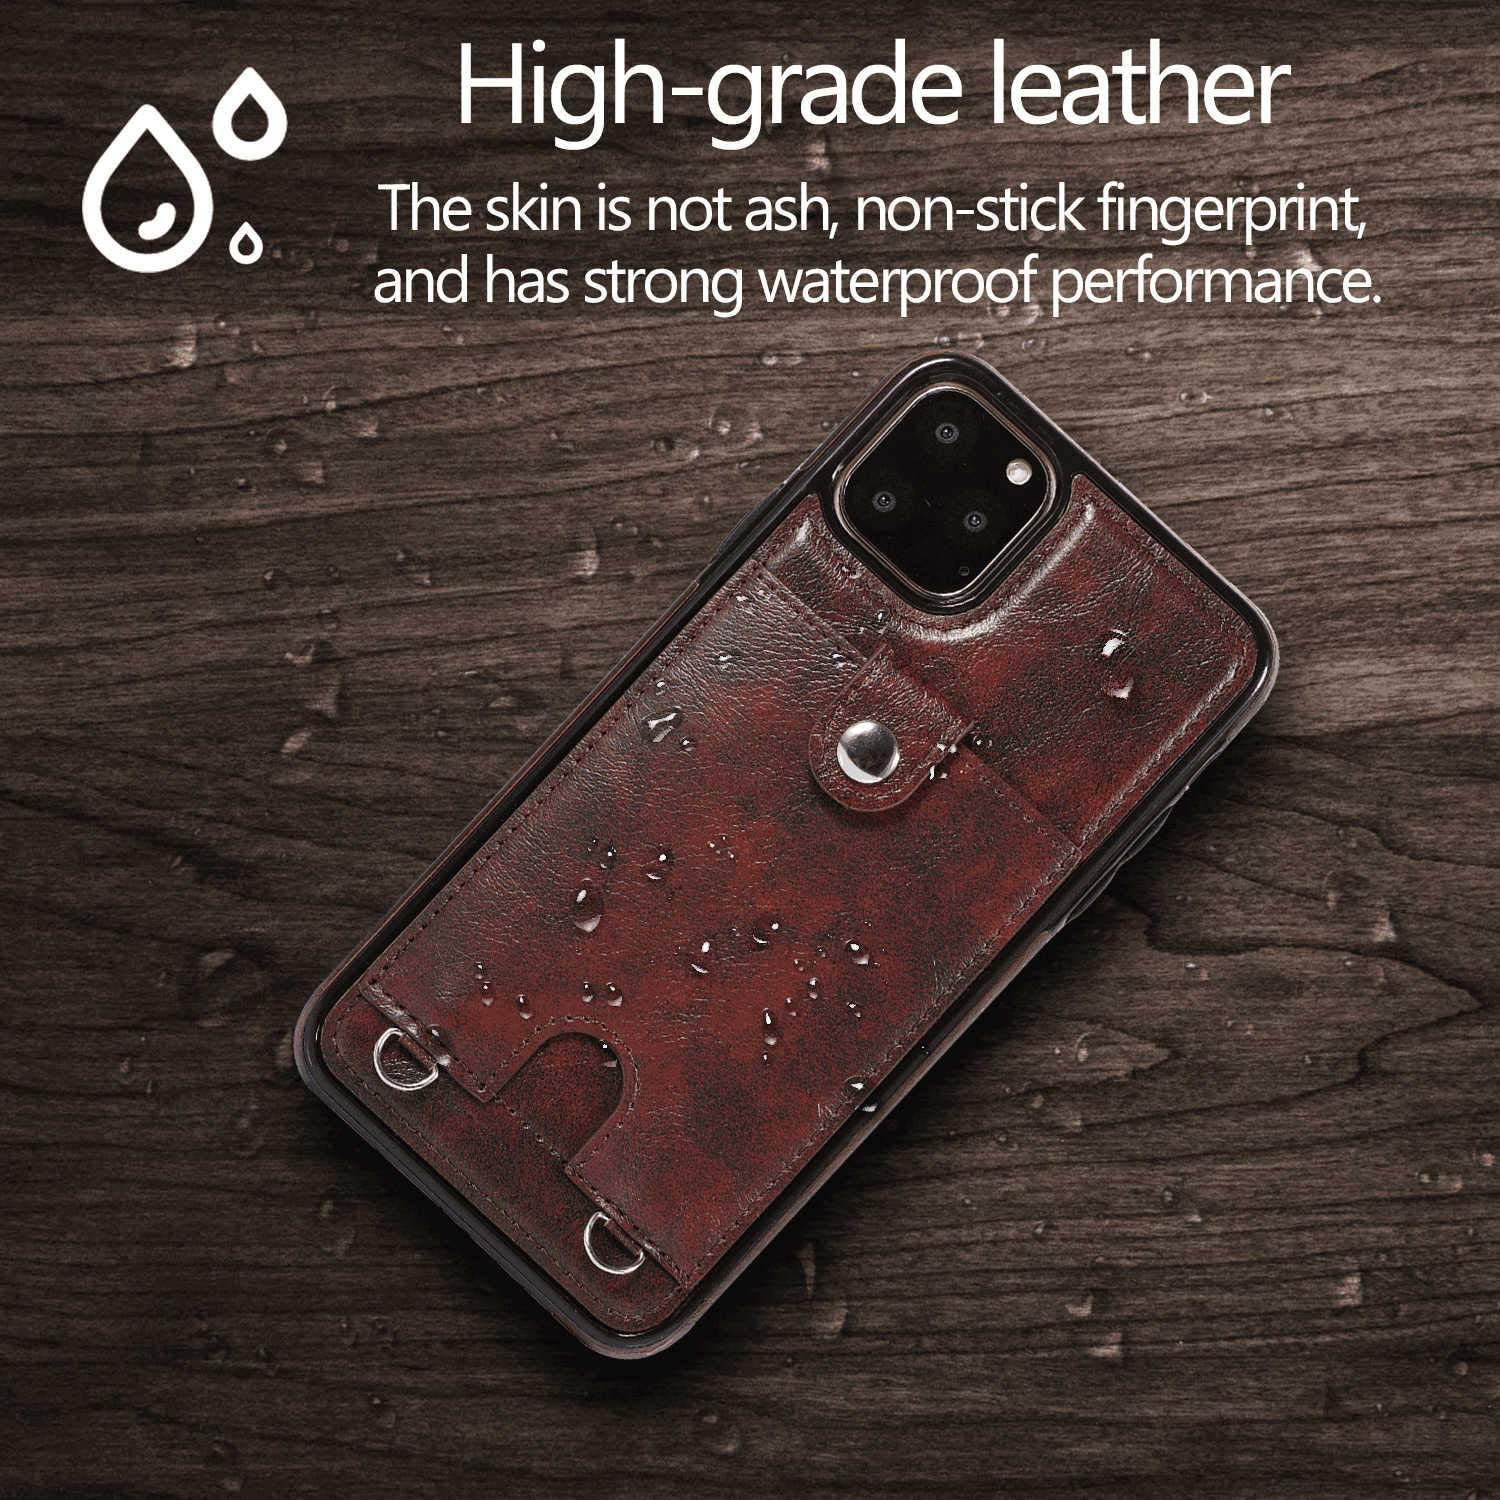 Leather Case for Huawei Mate 20 LITE Flip Cover fit for Huawei Mate 20 LITE Business Gifts with Waterproof-case Bags